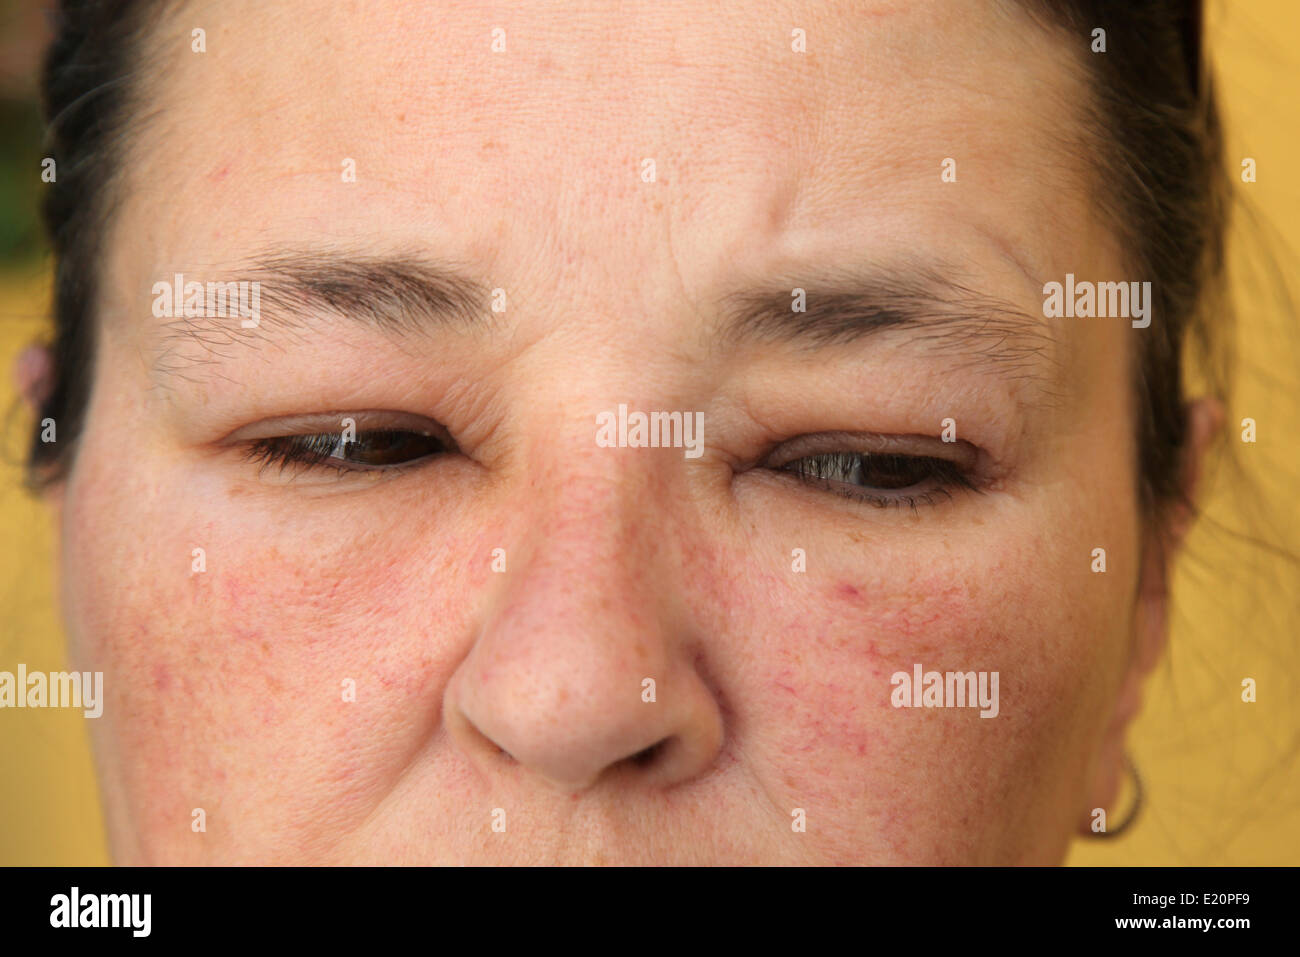 Allergy or conjunctivitis - close-up Stock Photo